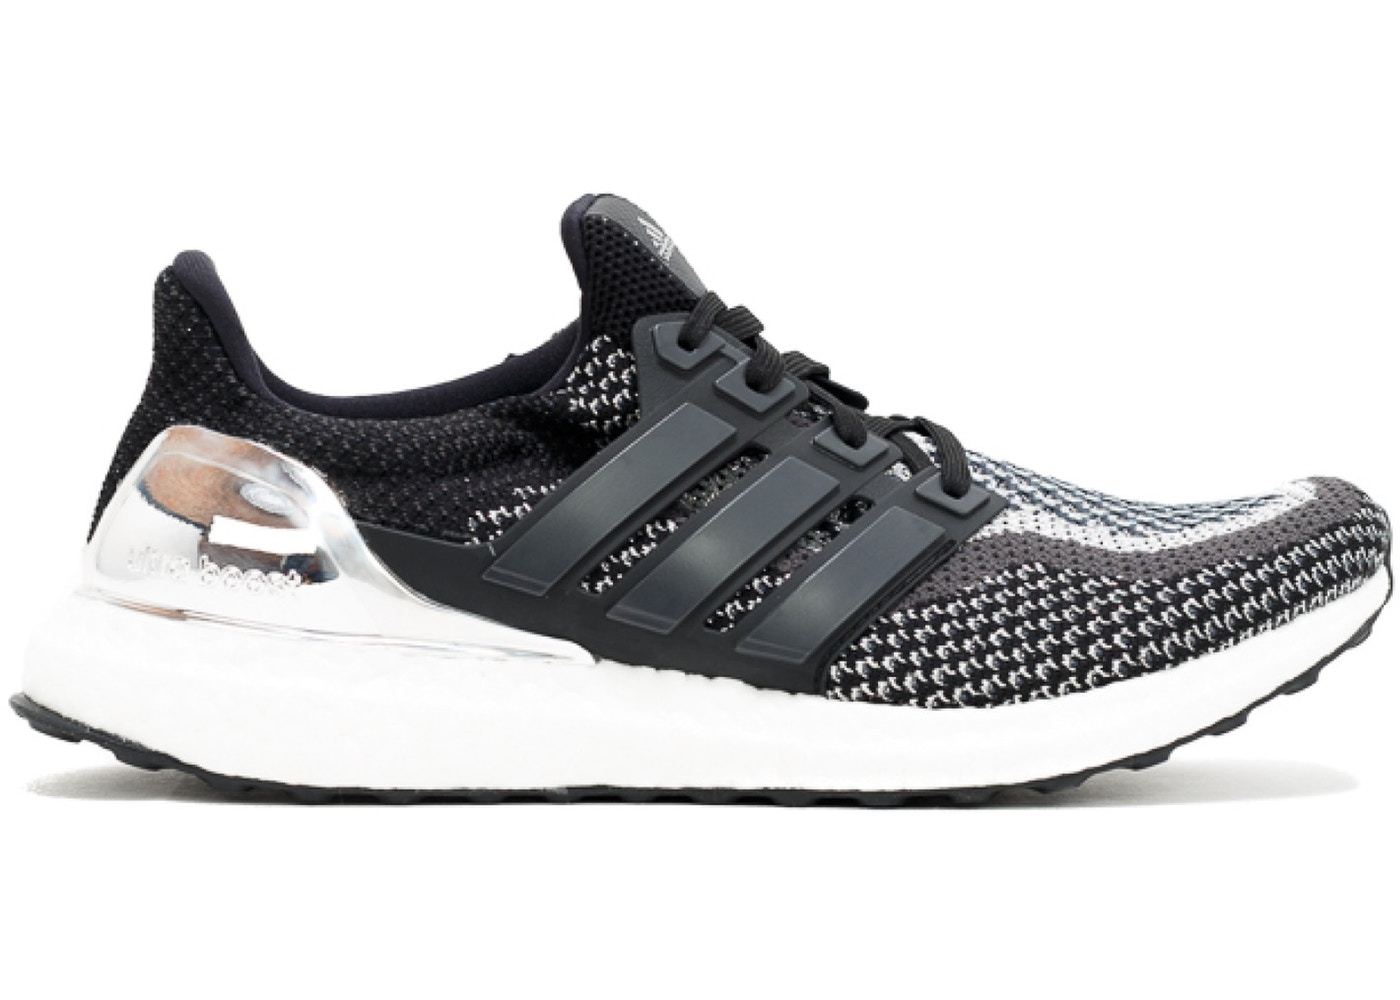 reputable site c0be2 7a13d adidas Ultra Boost 2.0 Silver Medal (2018). Silver Medal (2018)